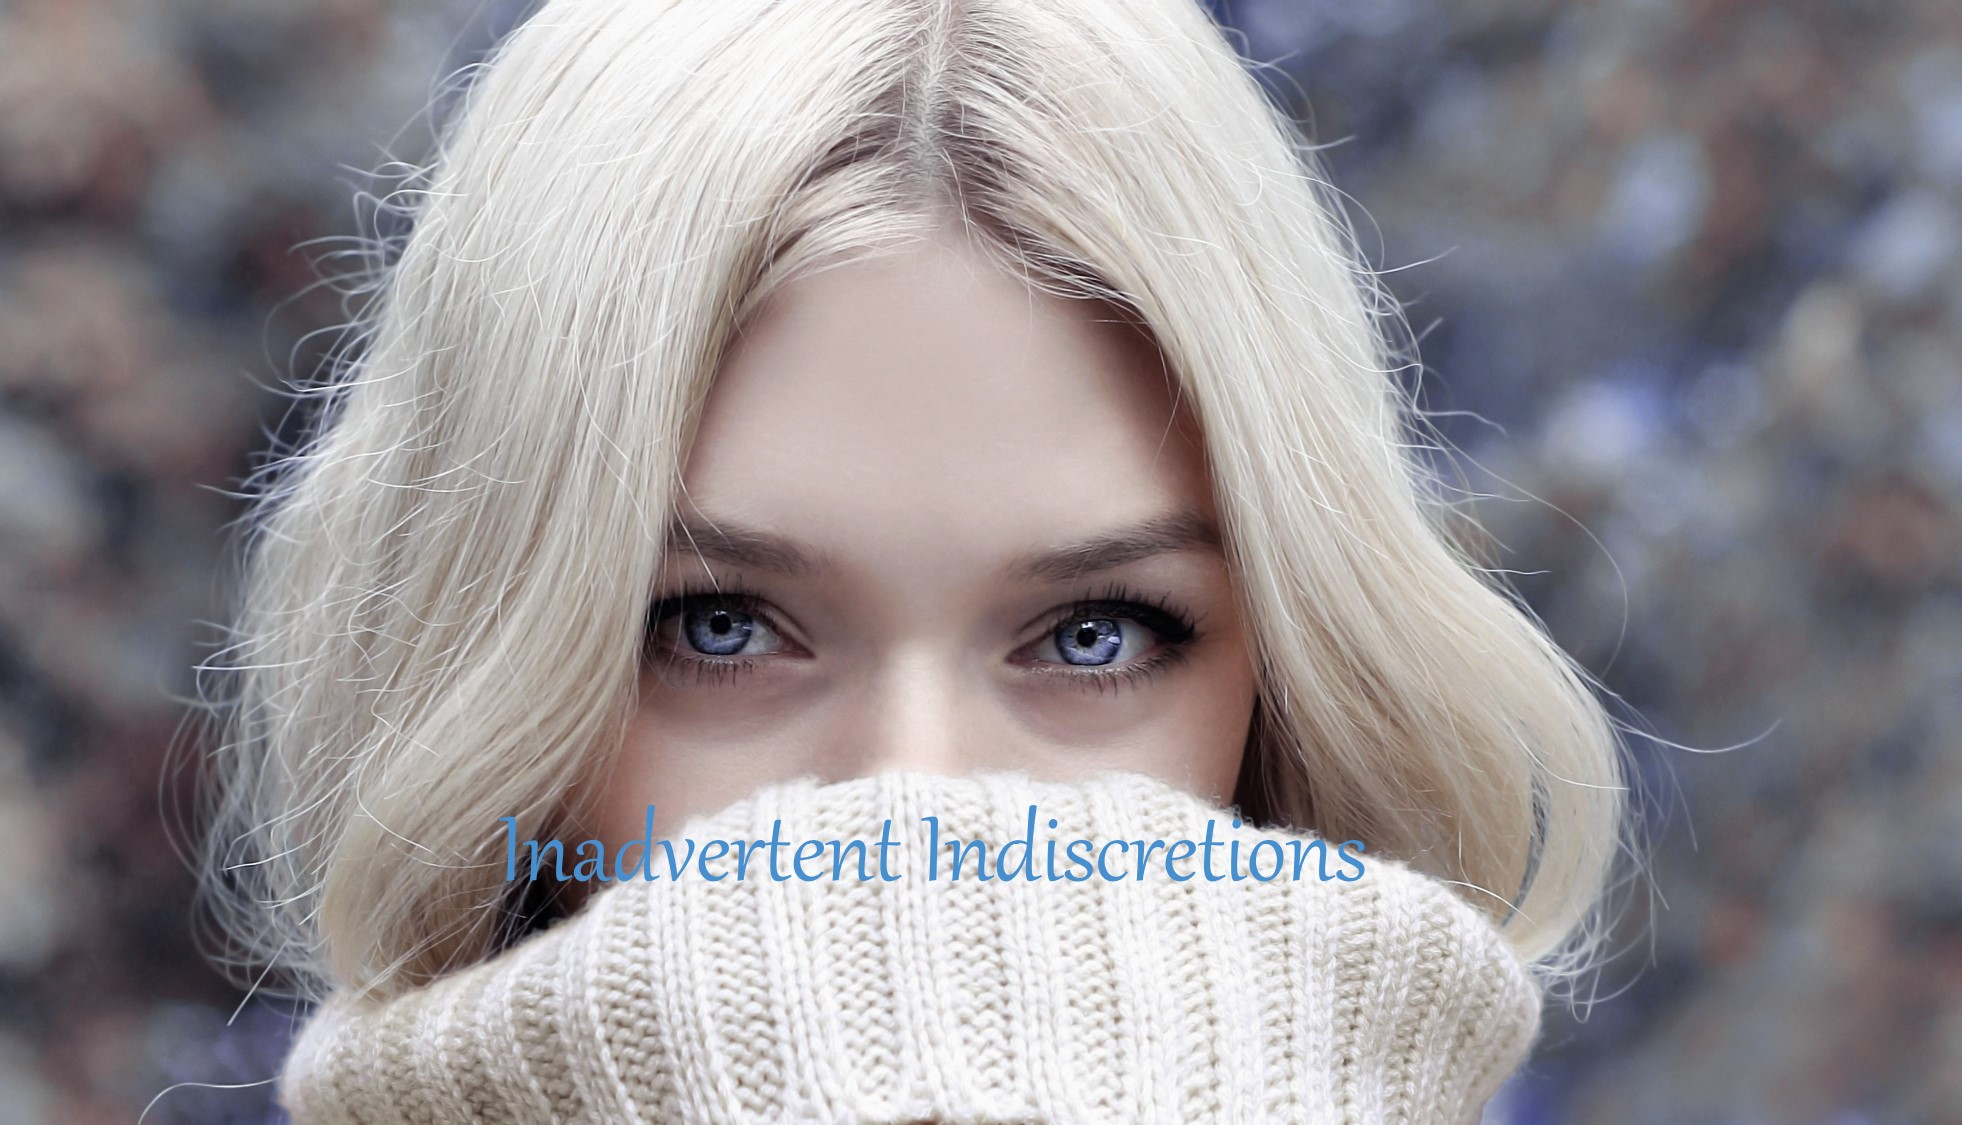 Inadvertent Indiscretions by Jordan Skythe